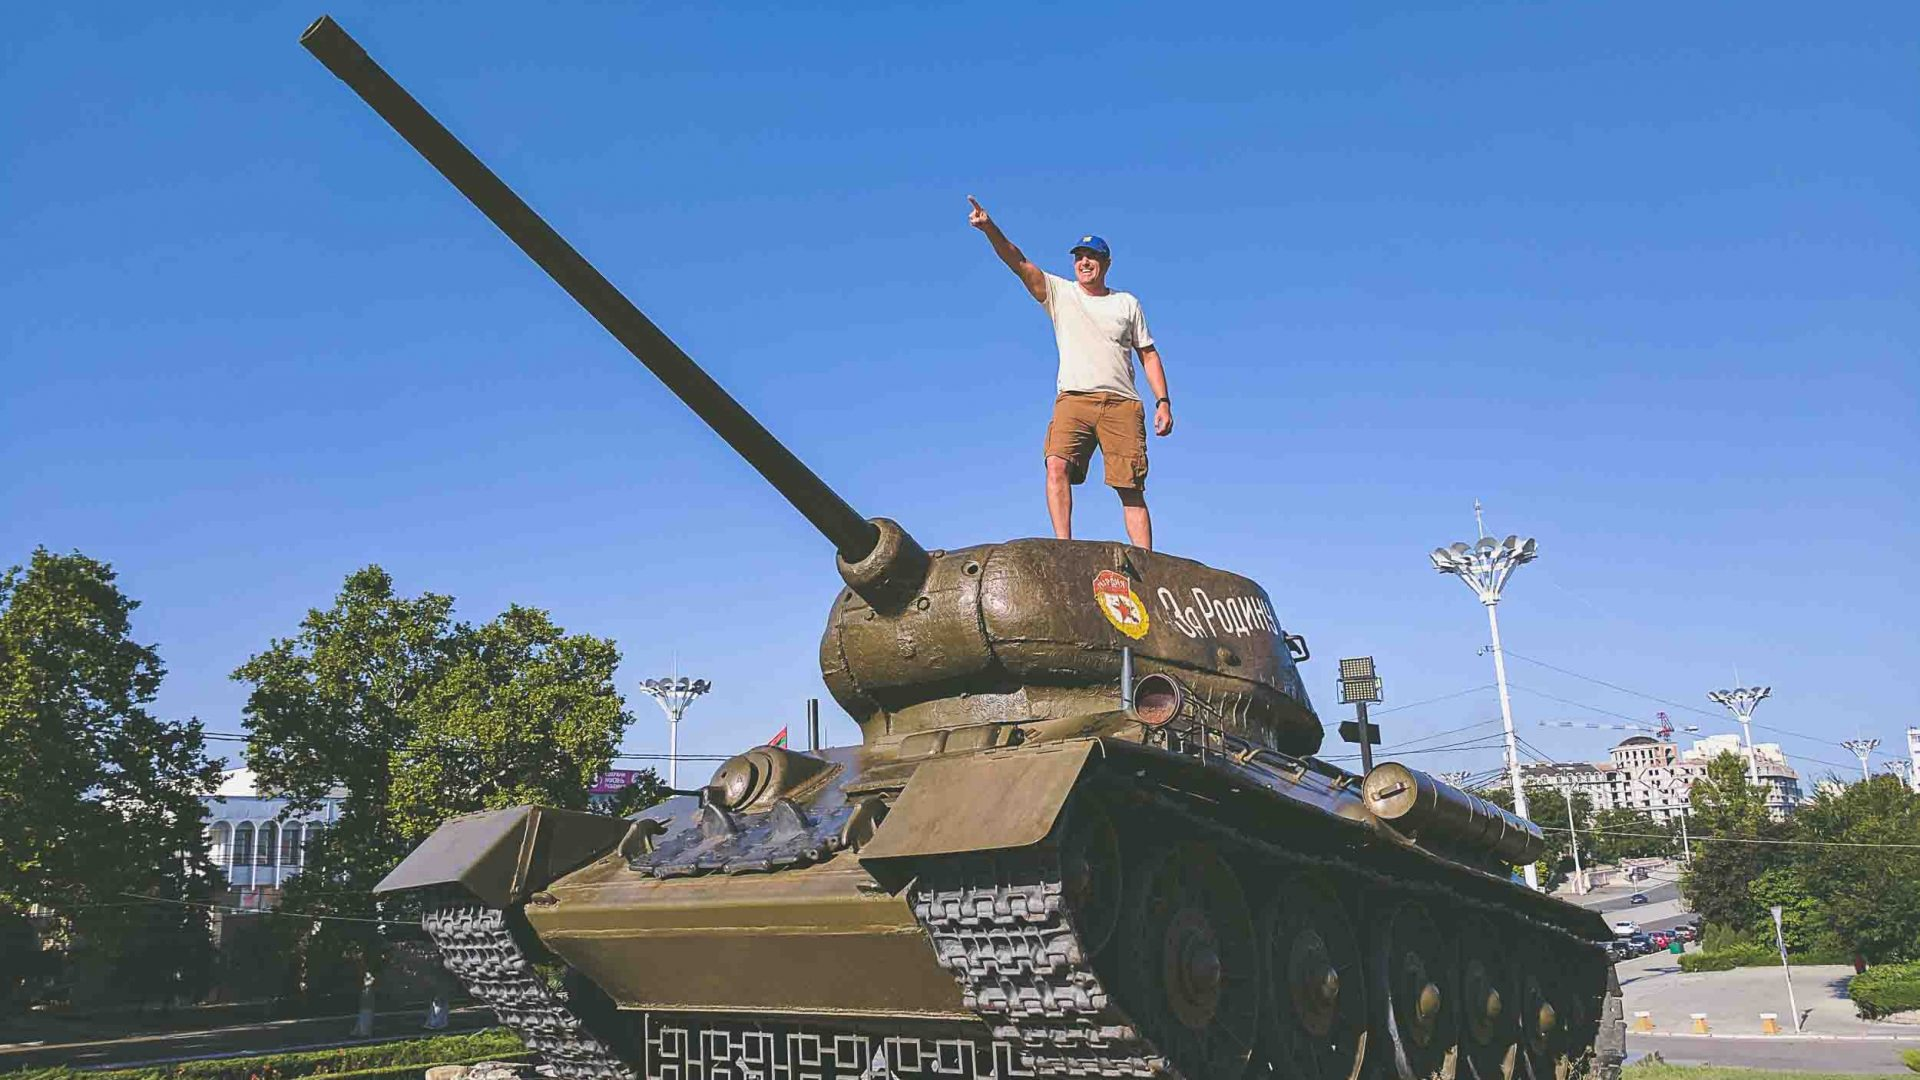 Standing atop a tank for a photo opp could get your arrested in Transnistria, according to one local.